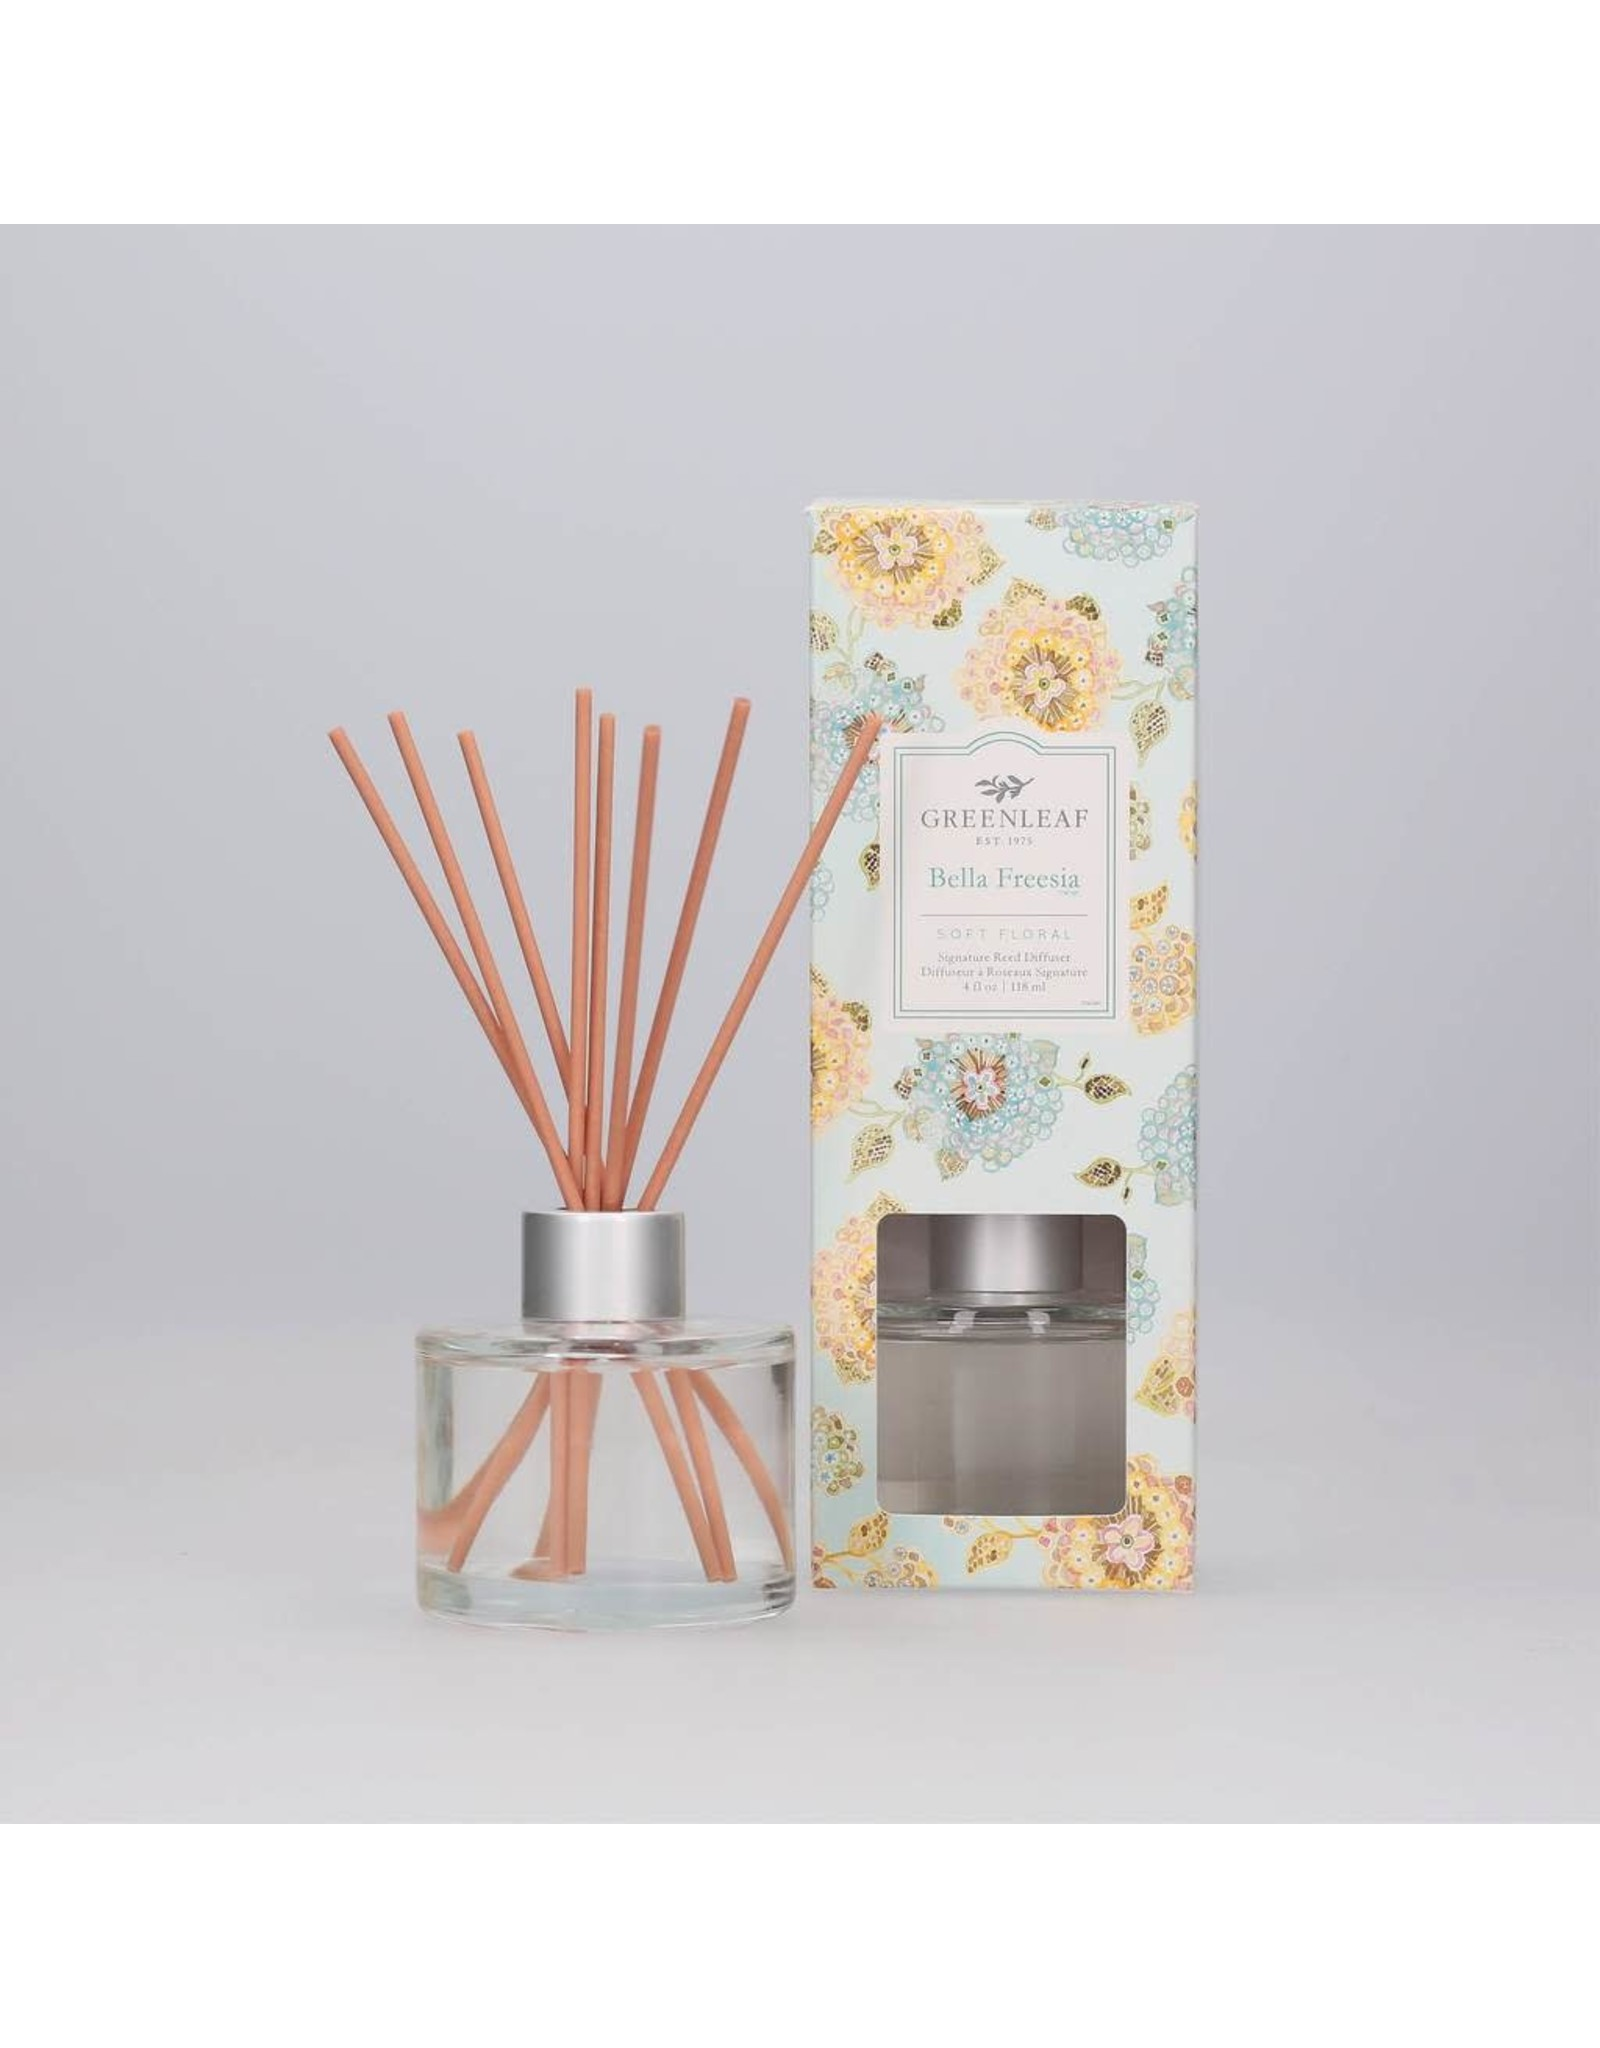 Bella Freesia reed Diffuser